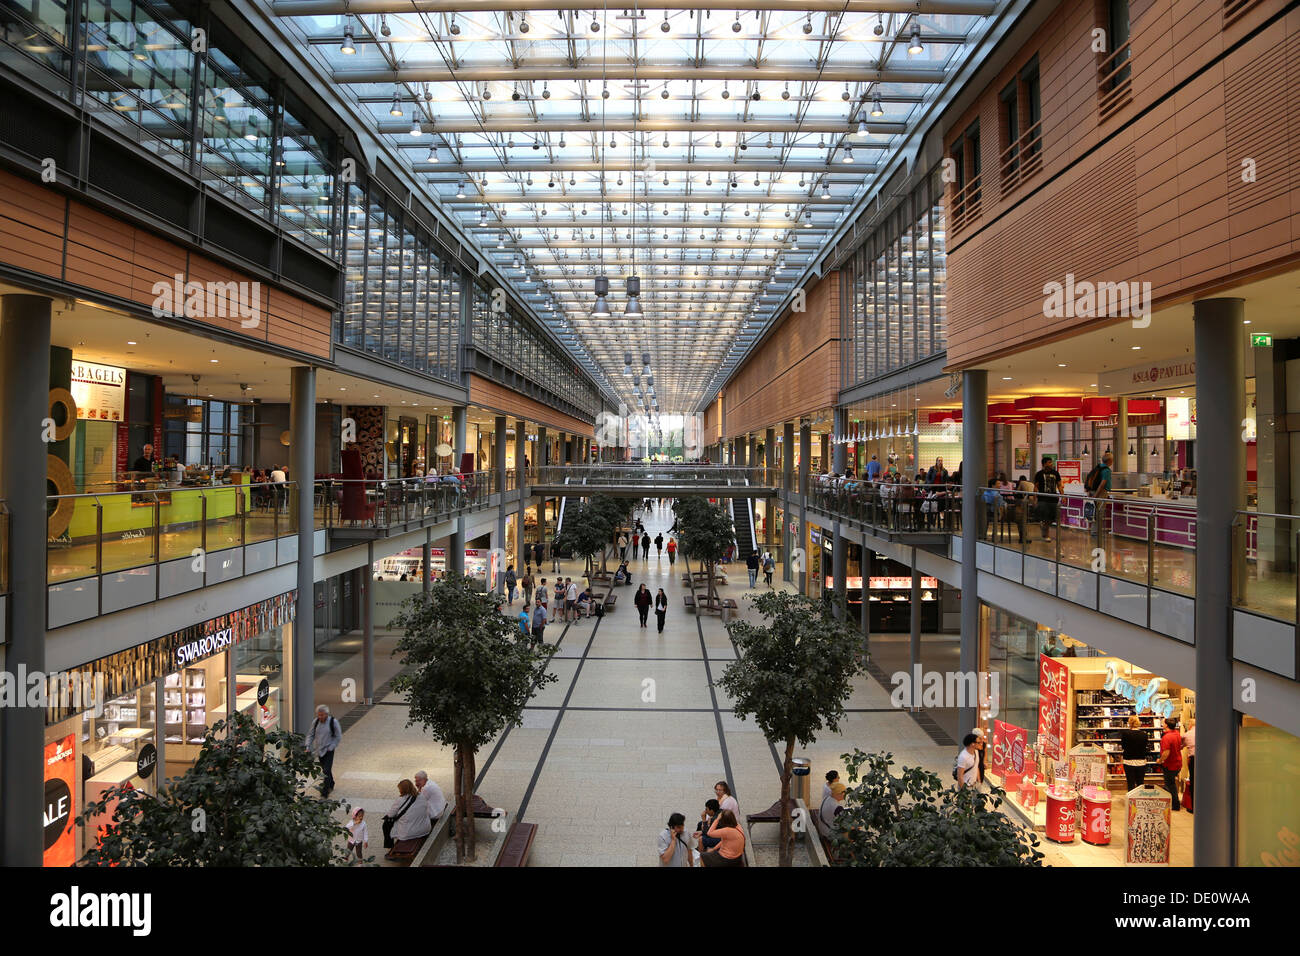 potsdamer platz arkaden shopping mall in berlin stock photo 60256178 alamy. Black Bedroom Furniture Sets. Home Design Ideas